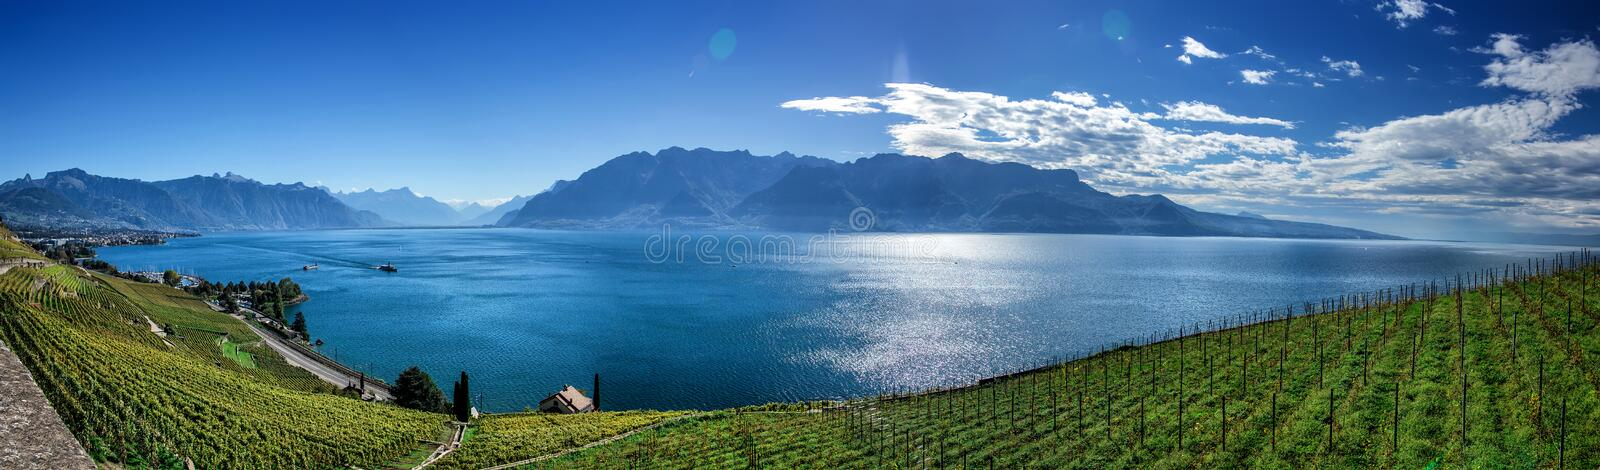 Famouse vineyards in Montreux against Geneva lake. stock photography